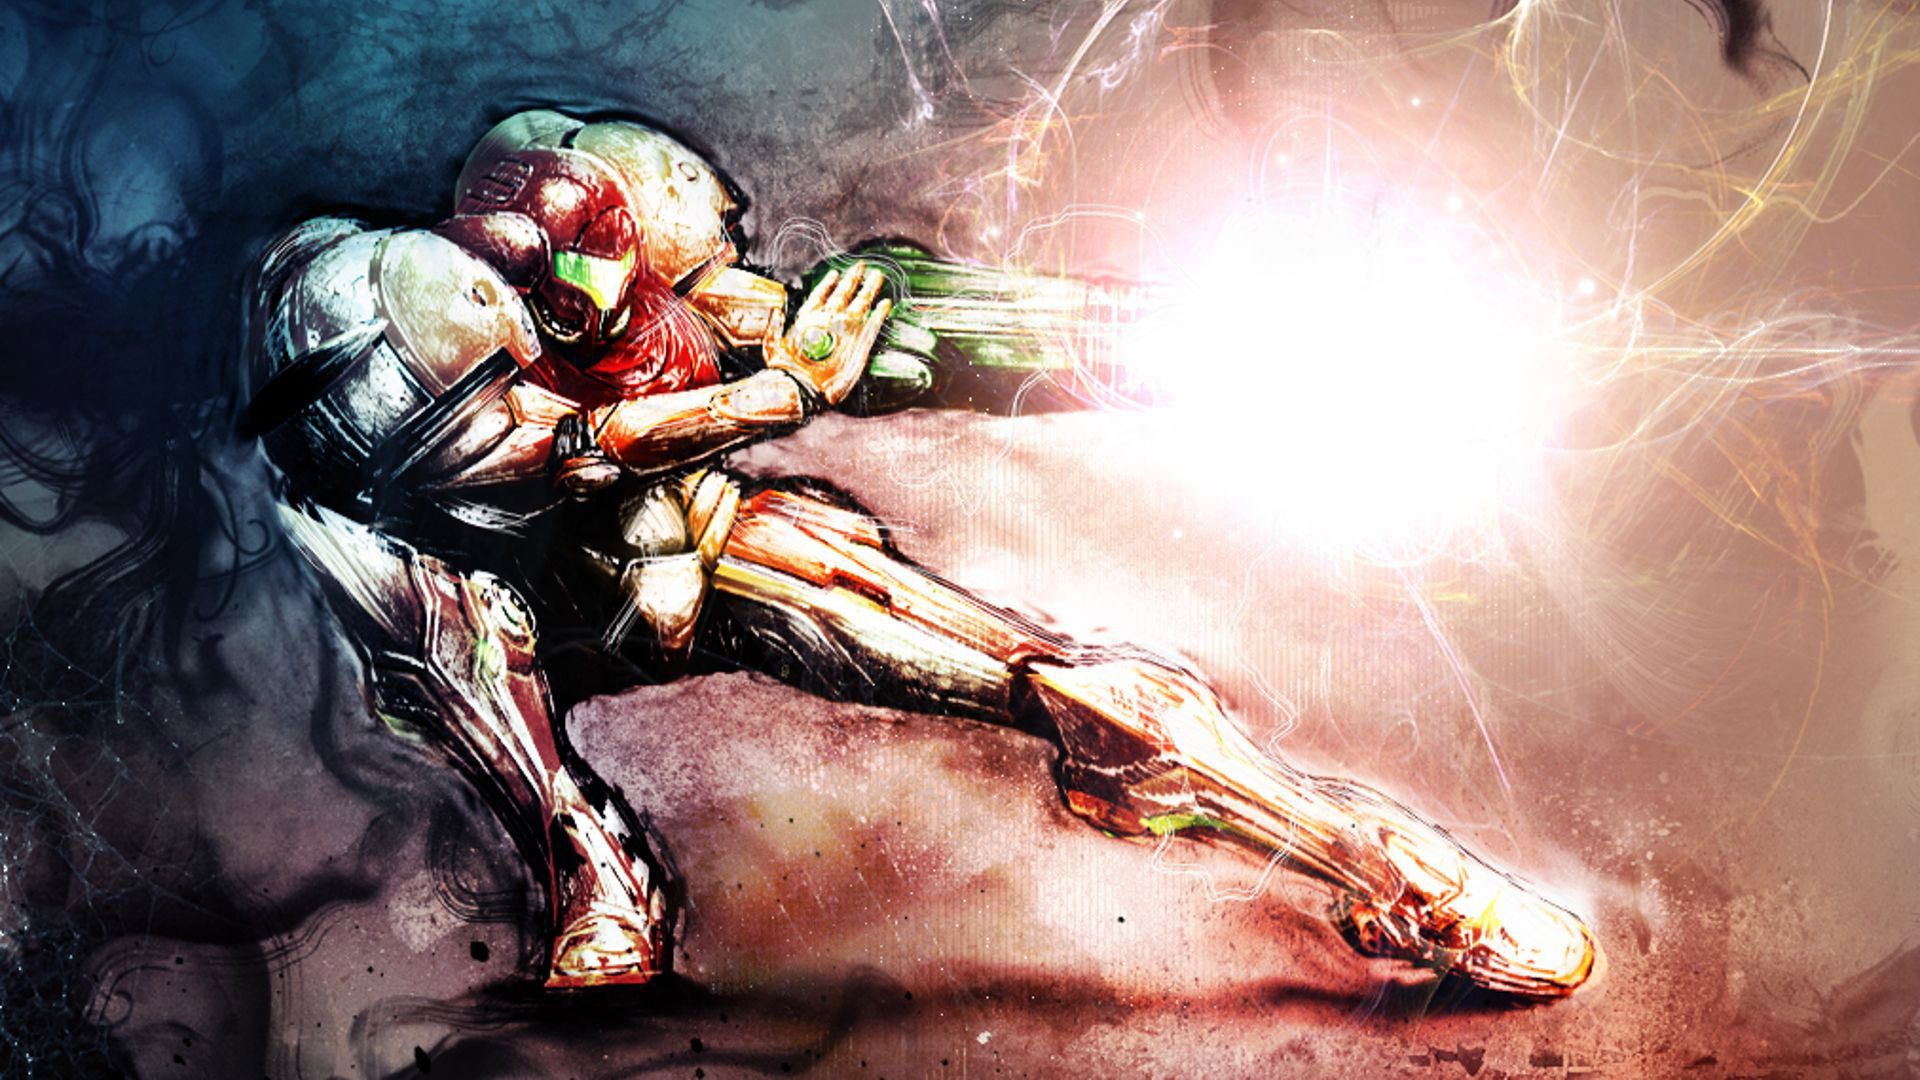 metroid hd wallpapers and backgrounds | beautiful wallpapers